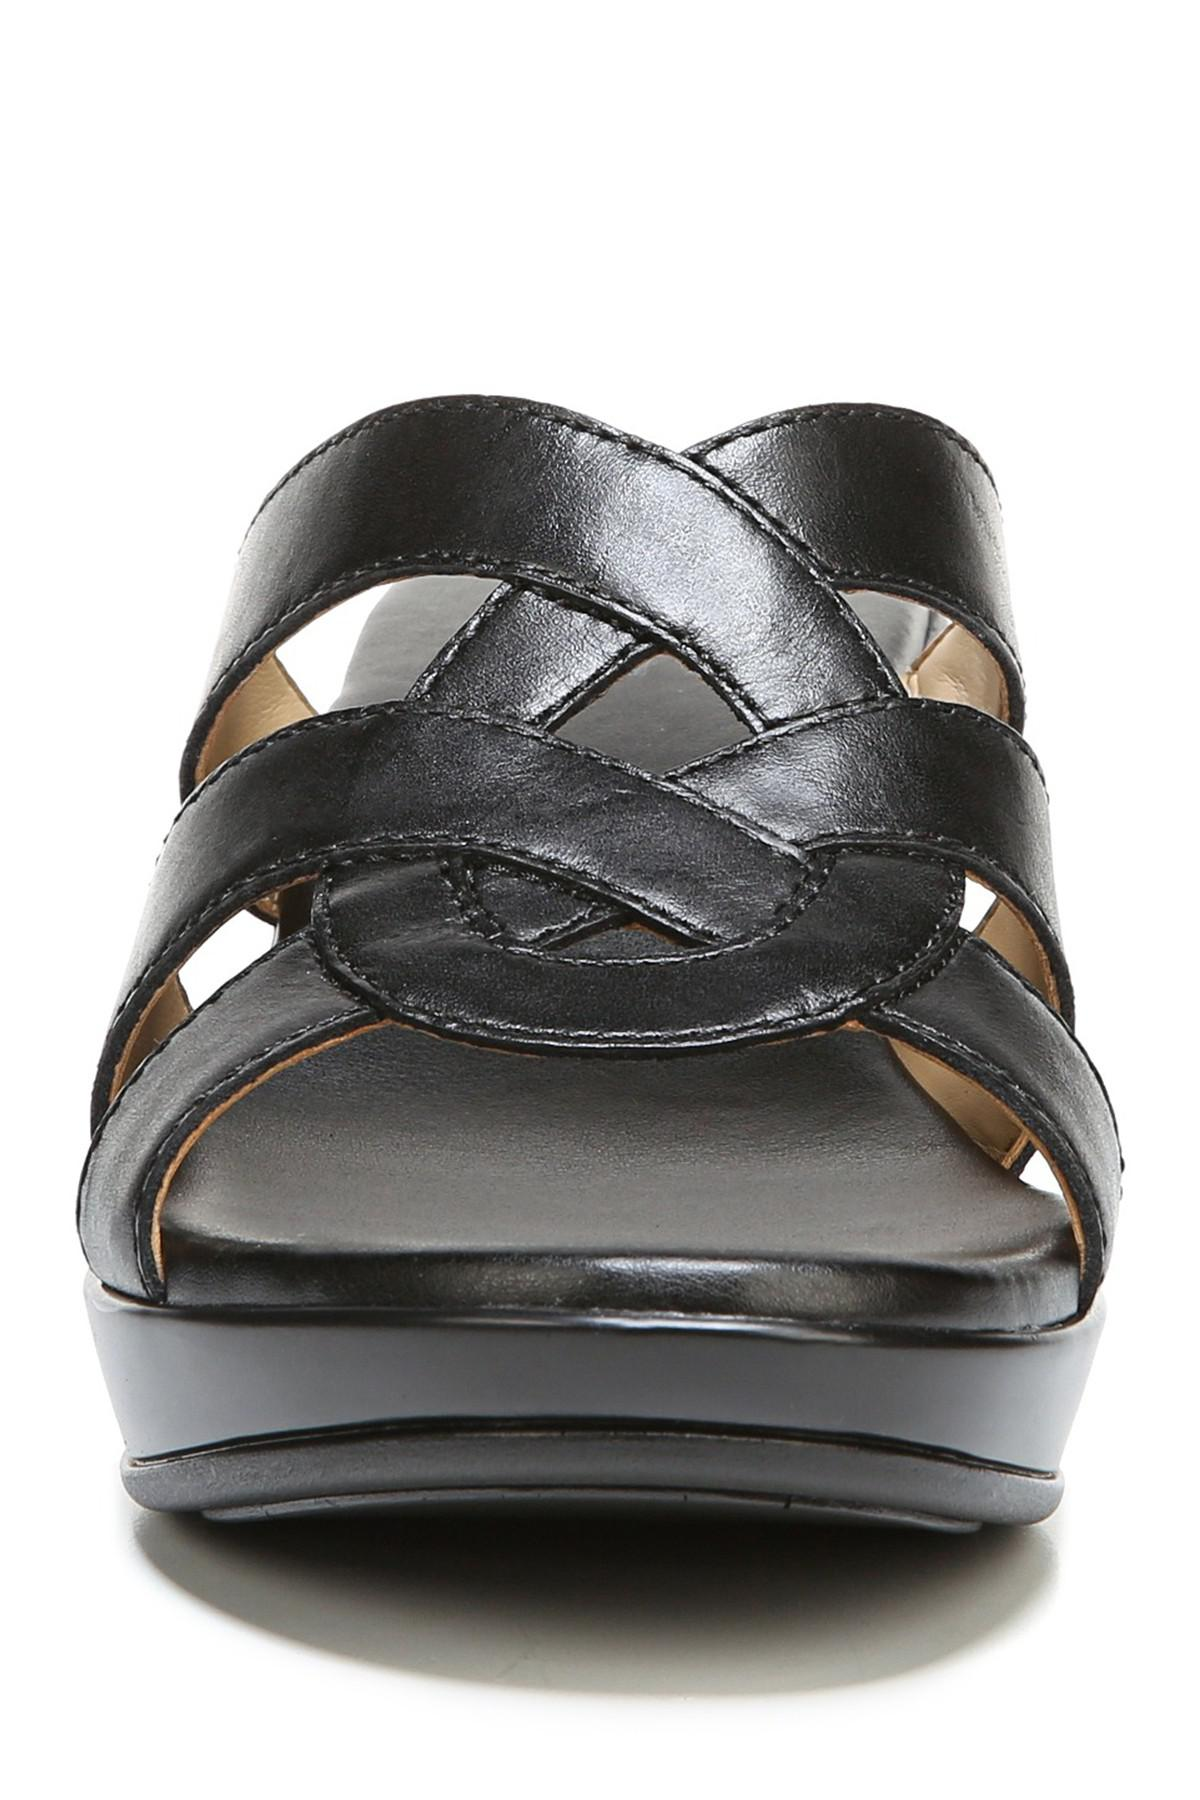 5ef64742568 Naturalizer - Black Violet Leather Wedge Sandal - Wide Width Available -  Lyst. View fullscreen